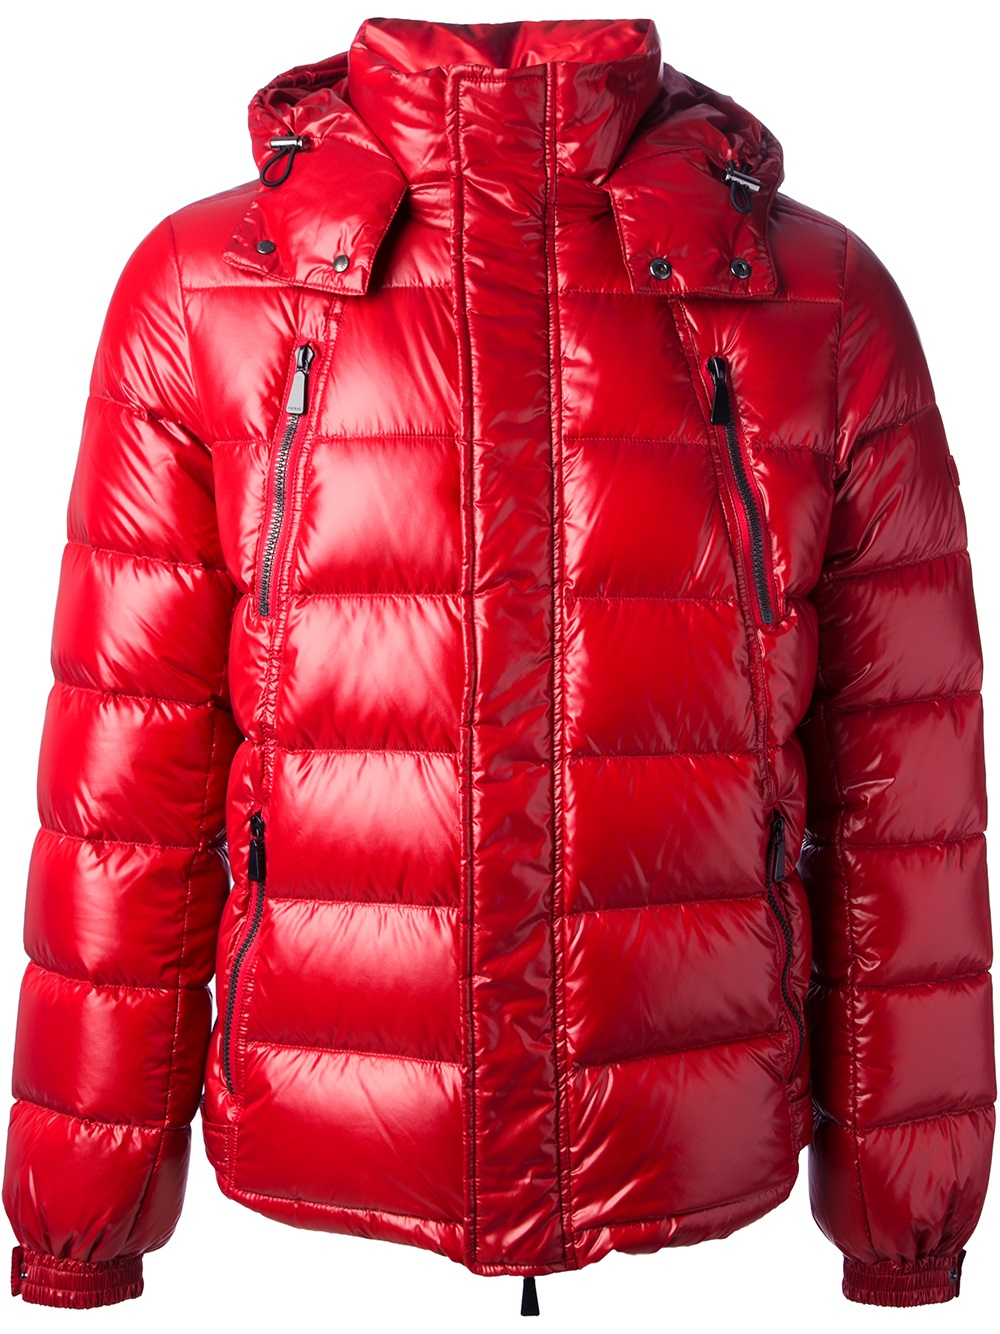 Buy low price, high quality ladies red padded jacket with worldwide shipping on humorrmundiall.ga